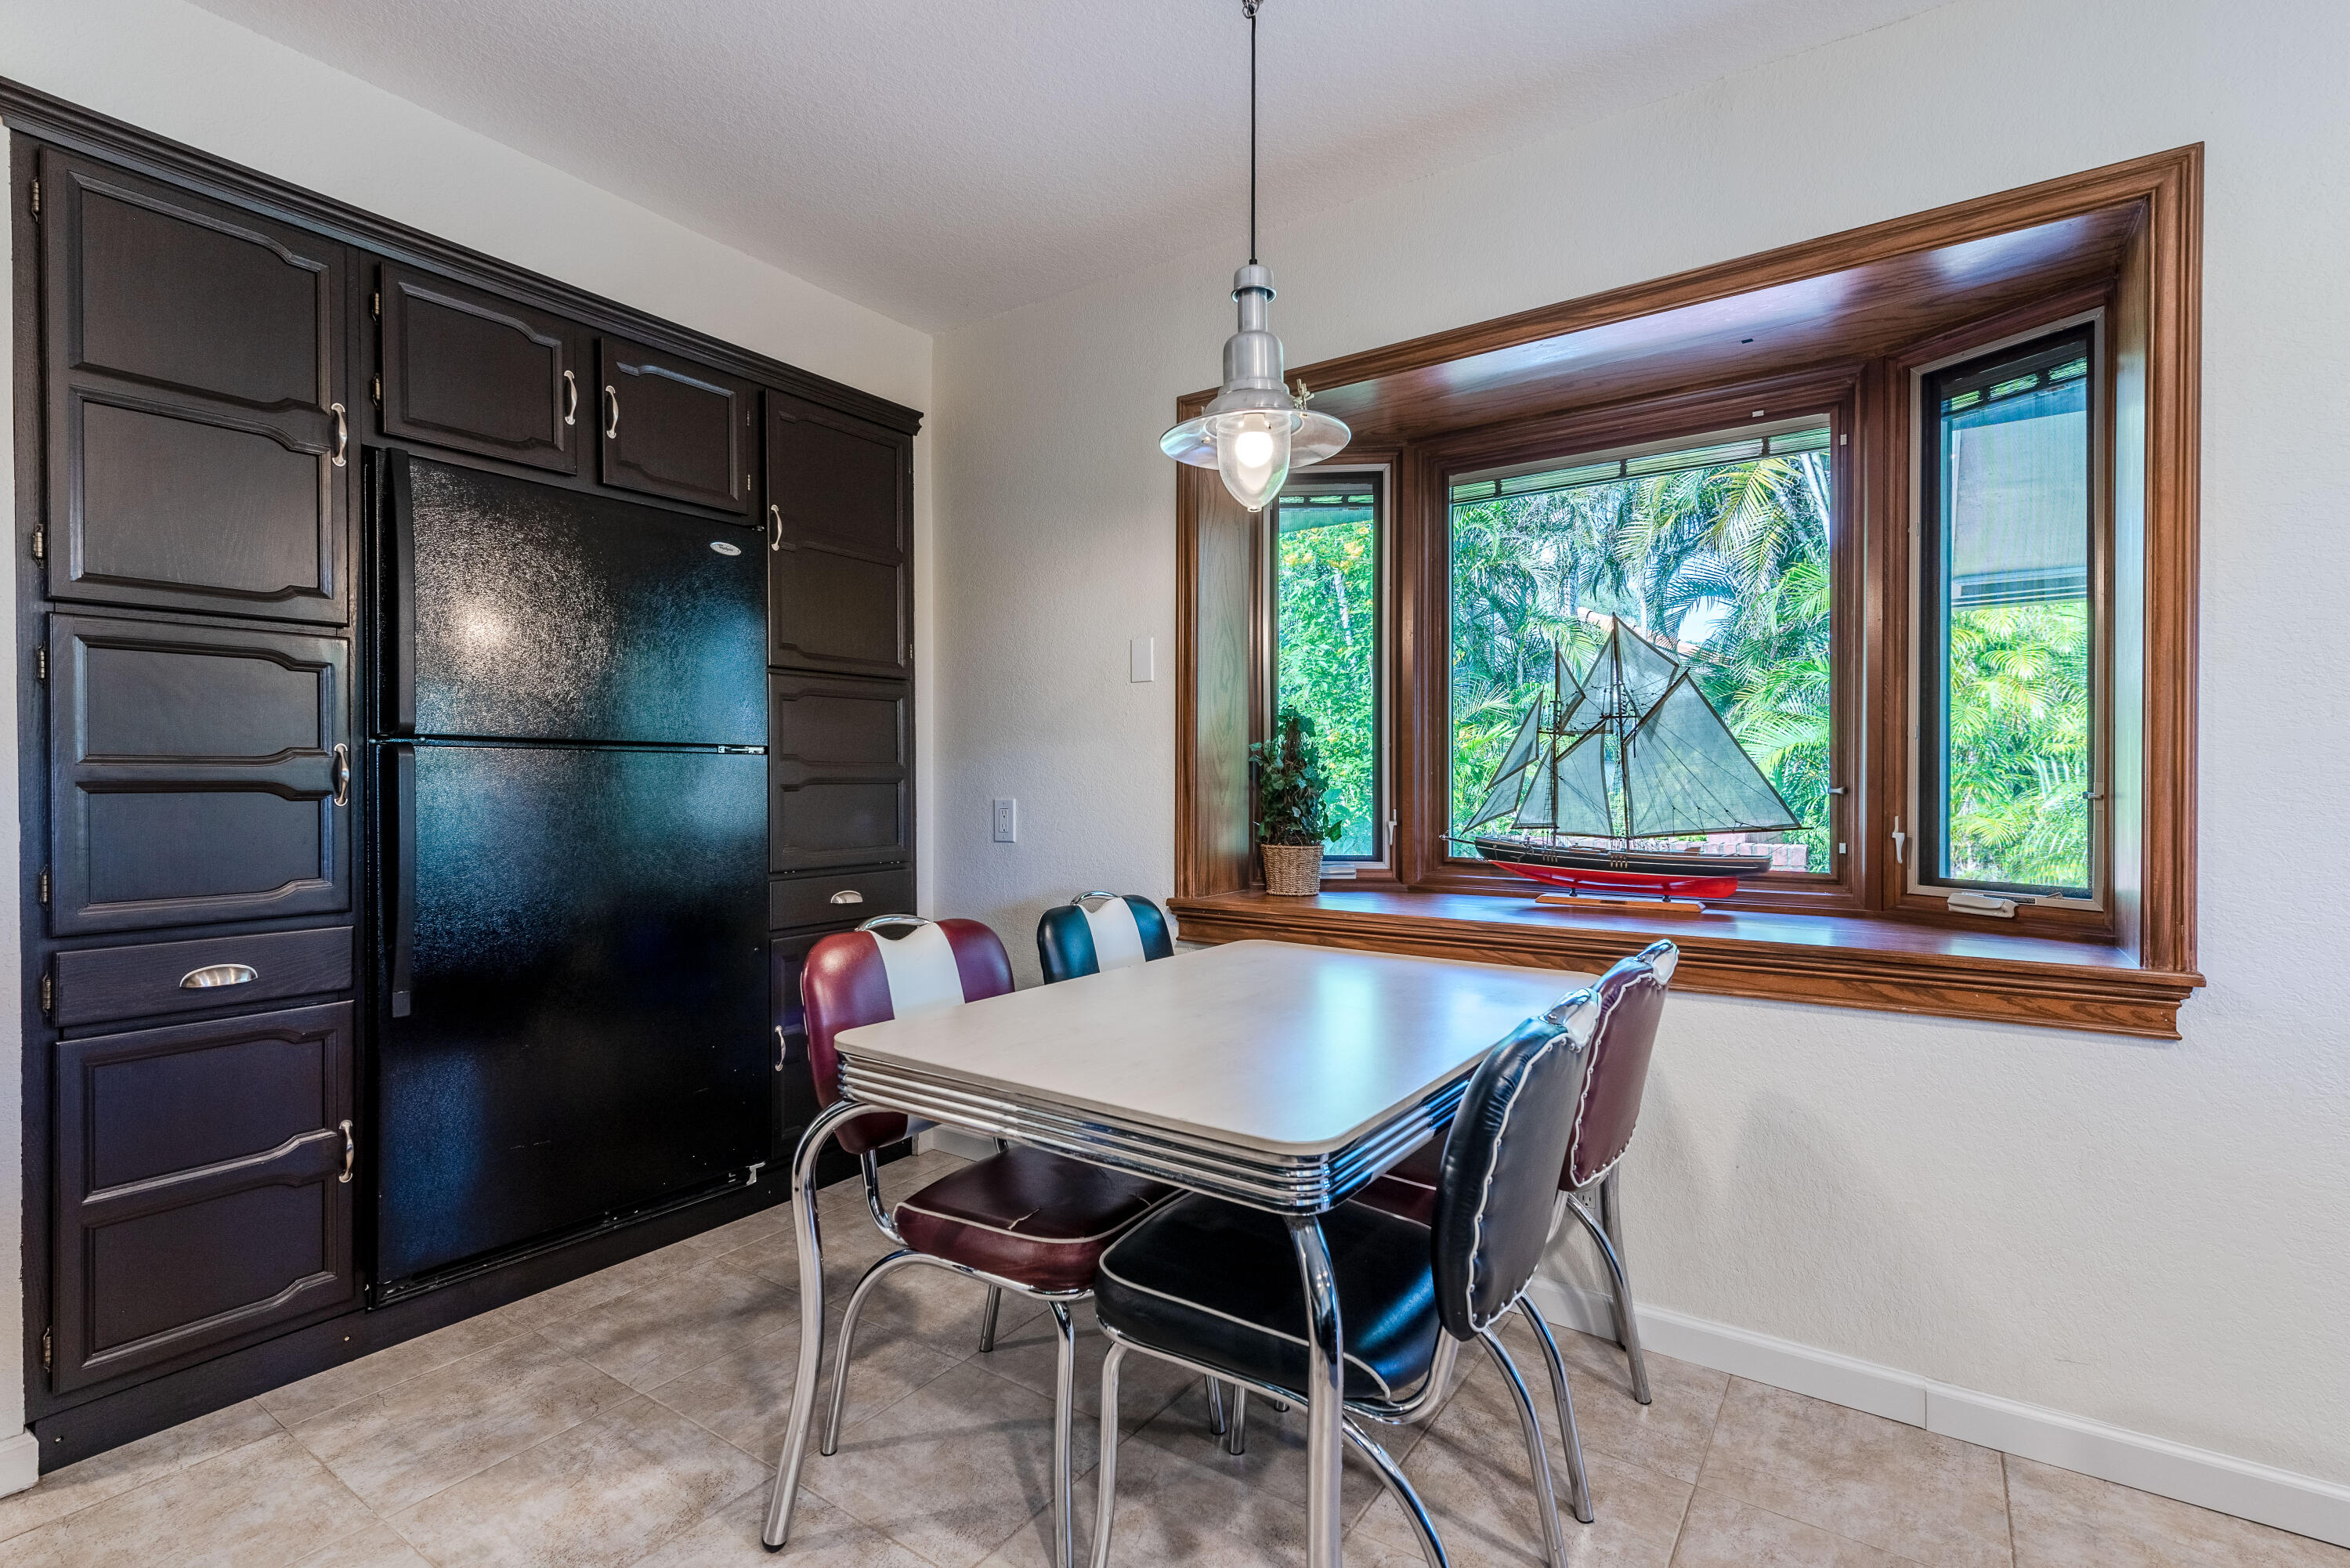 3519 Lakeview Dr (26 of 49)